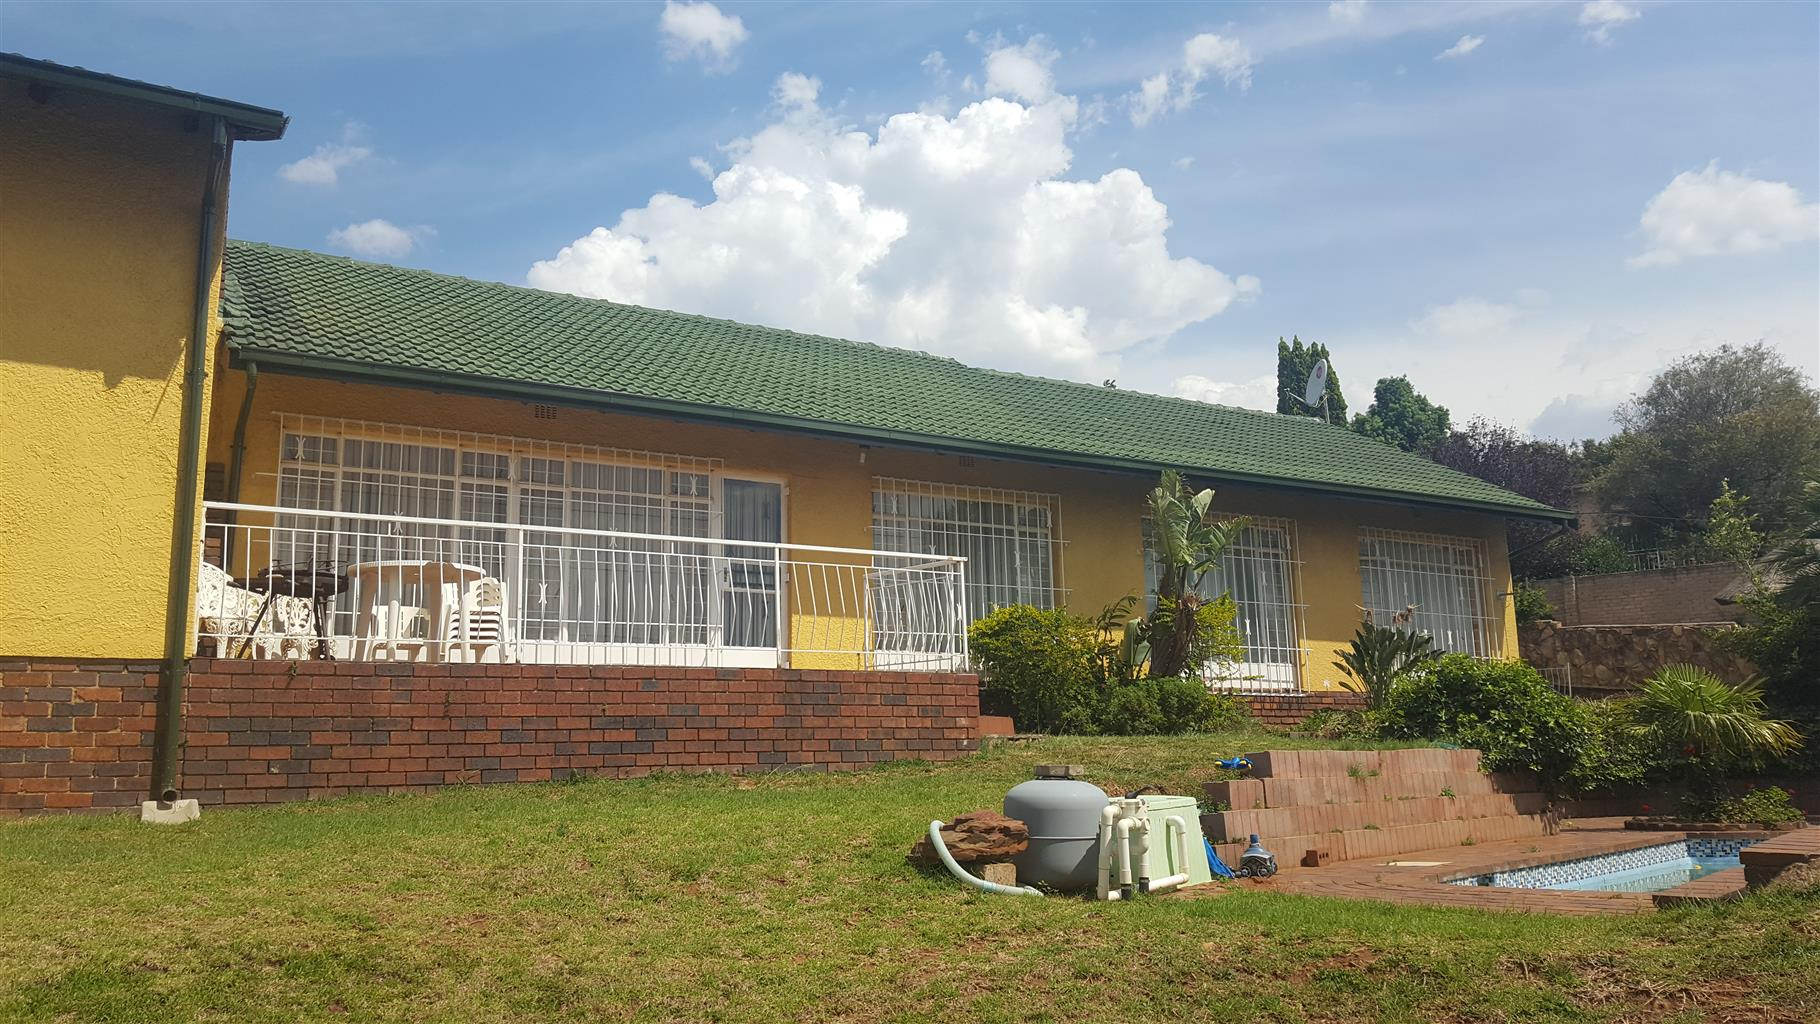 Outstanding 3-bedroom house available in Wilropark